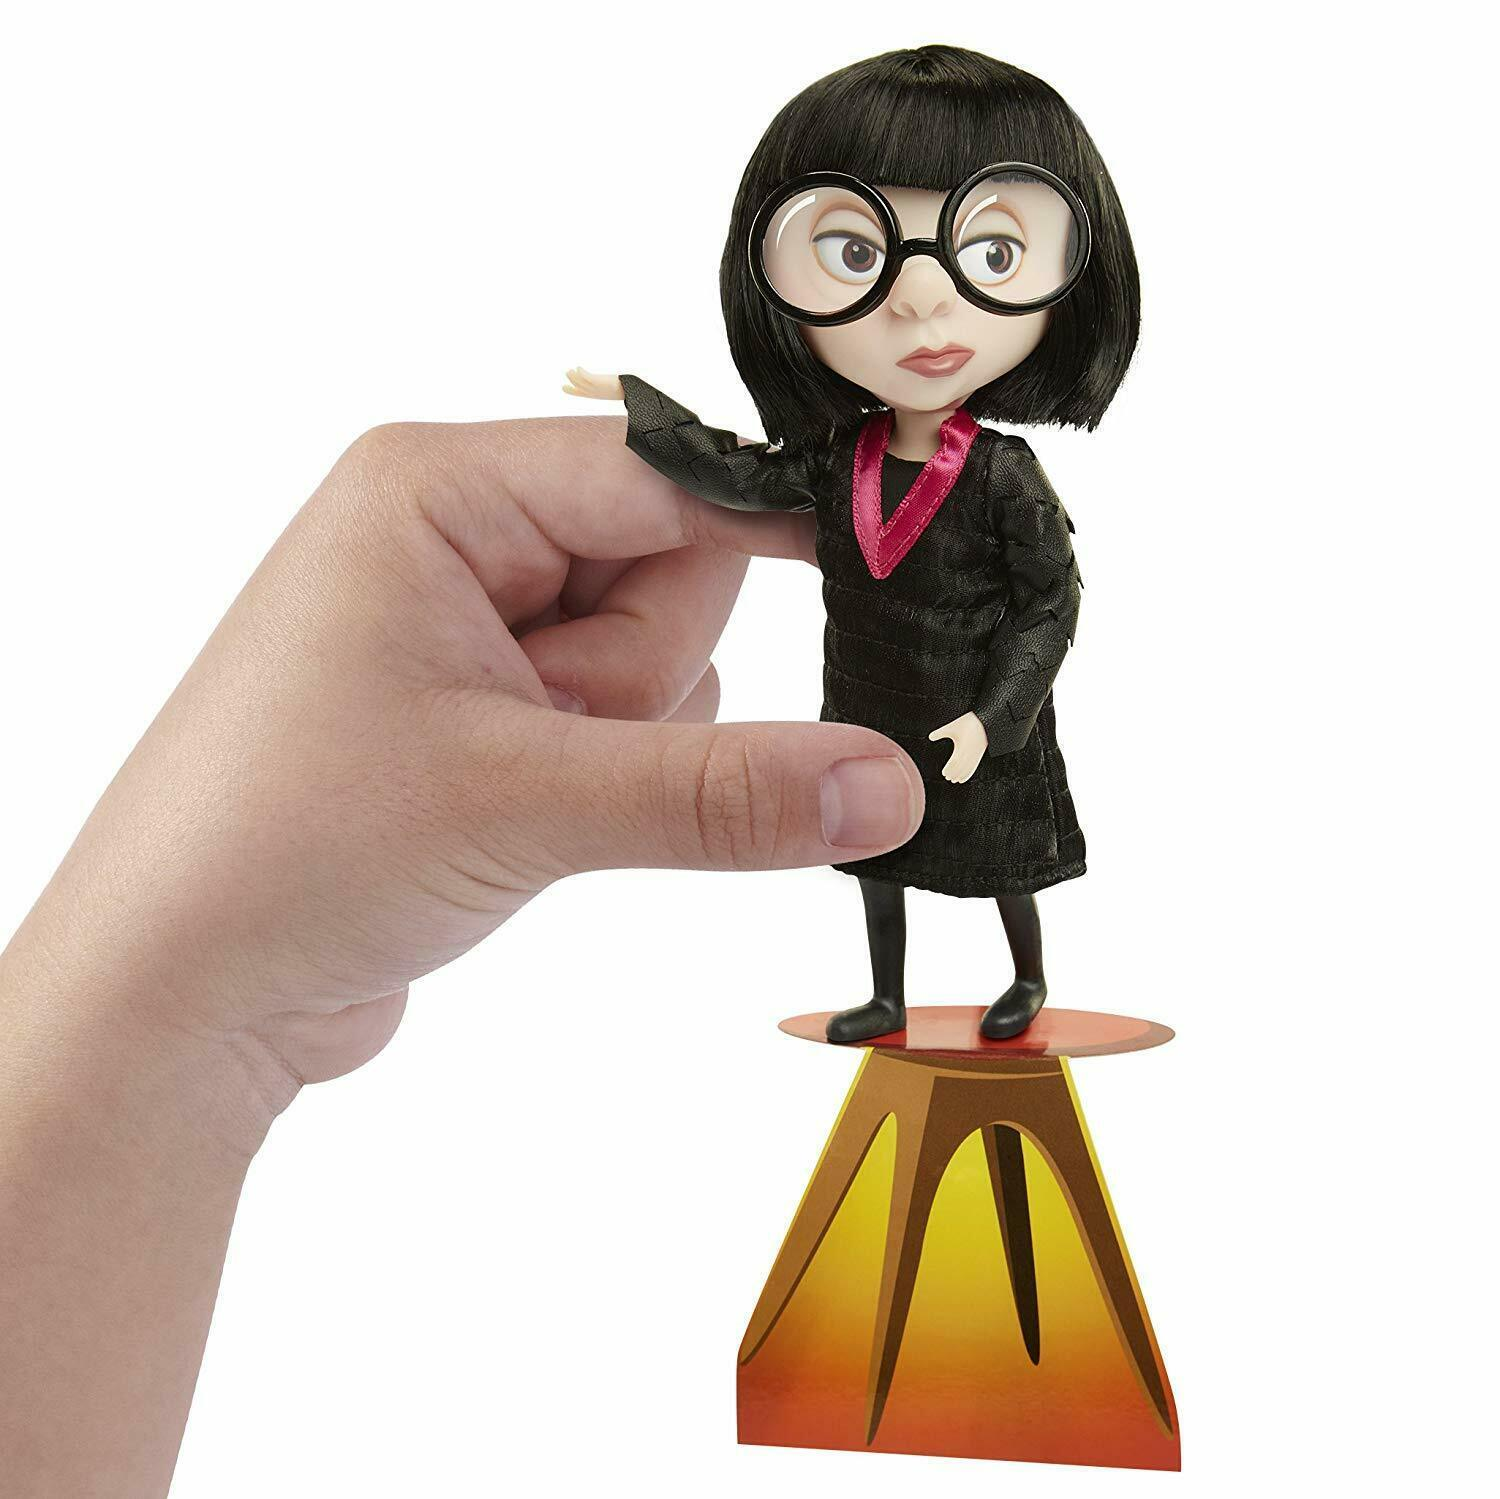 The Incredibles 2 Edna Action Figure Doll in Deluxe Costume and Glasses - $22.09